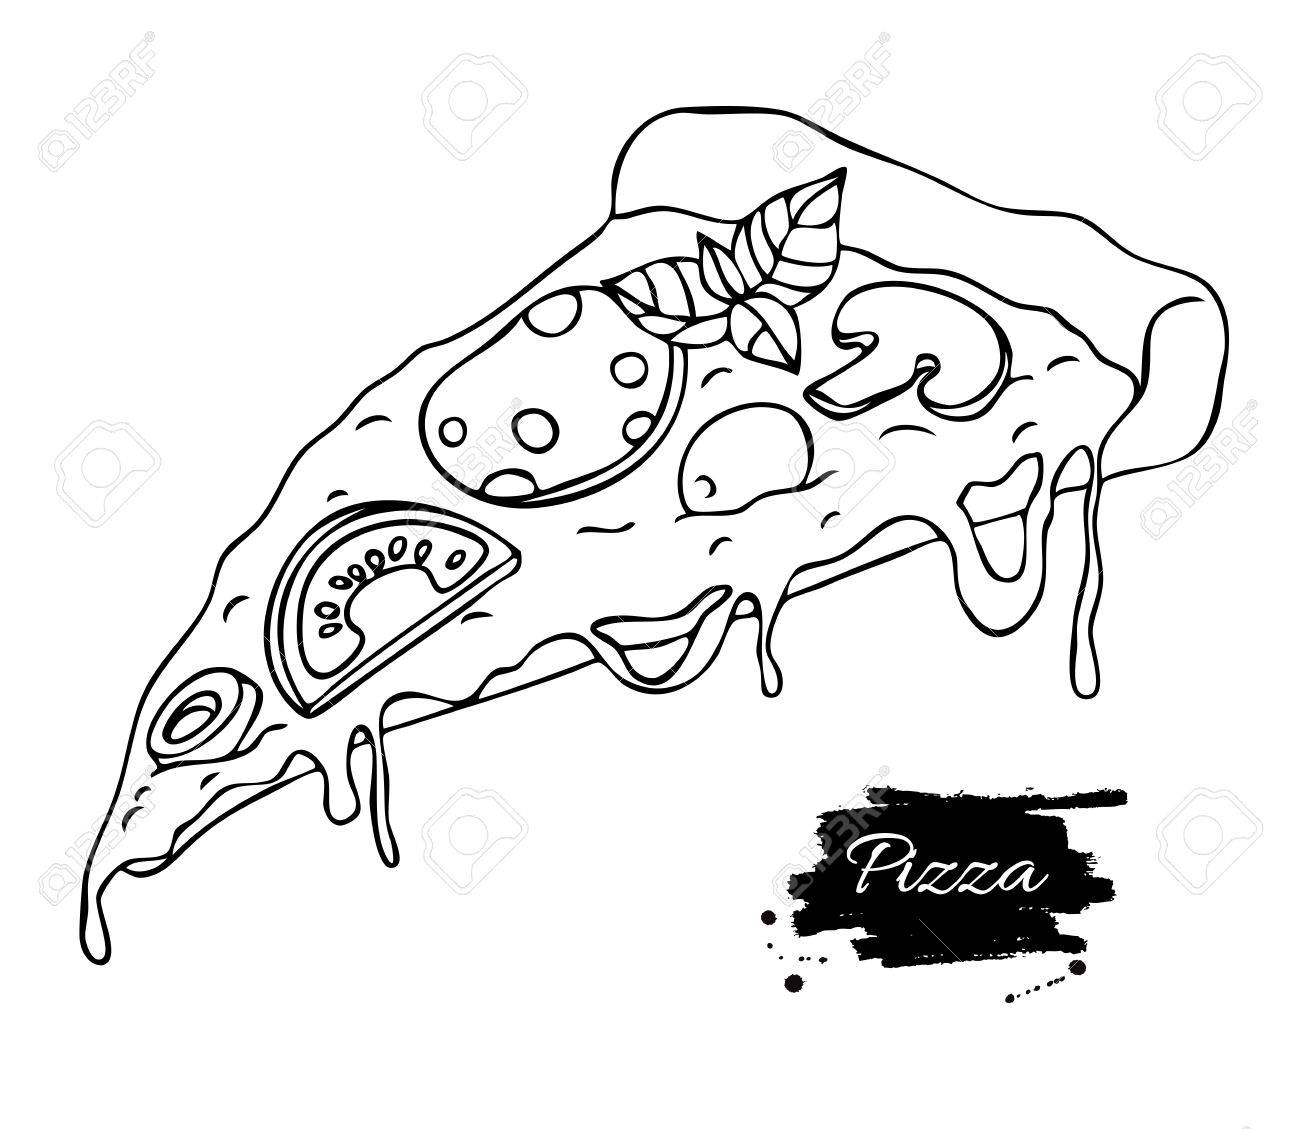 1300x1129 Vector Pizza Slice Drawing. Hand Drawn Doodle Pizza Illustration